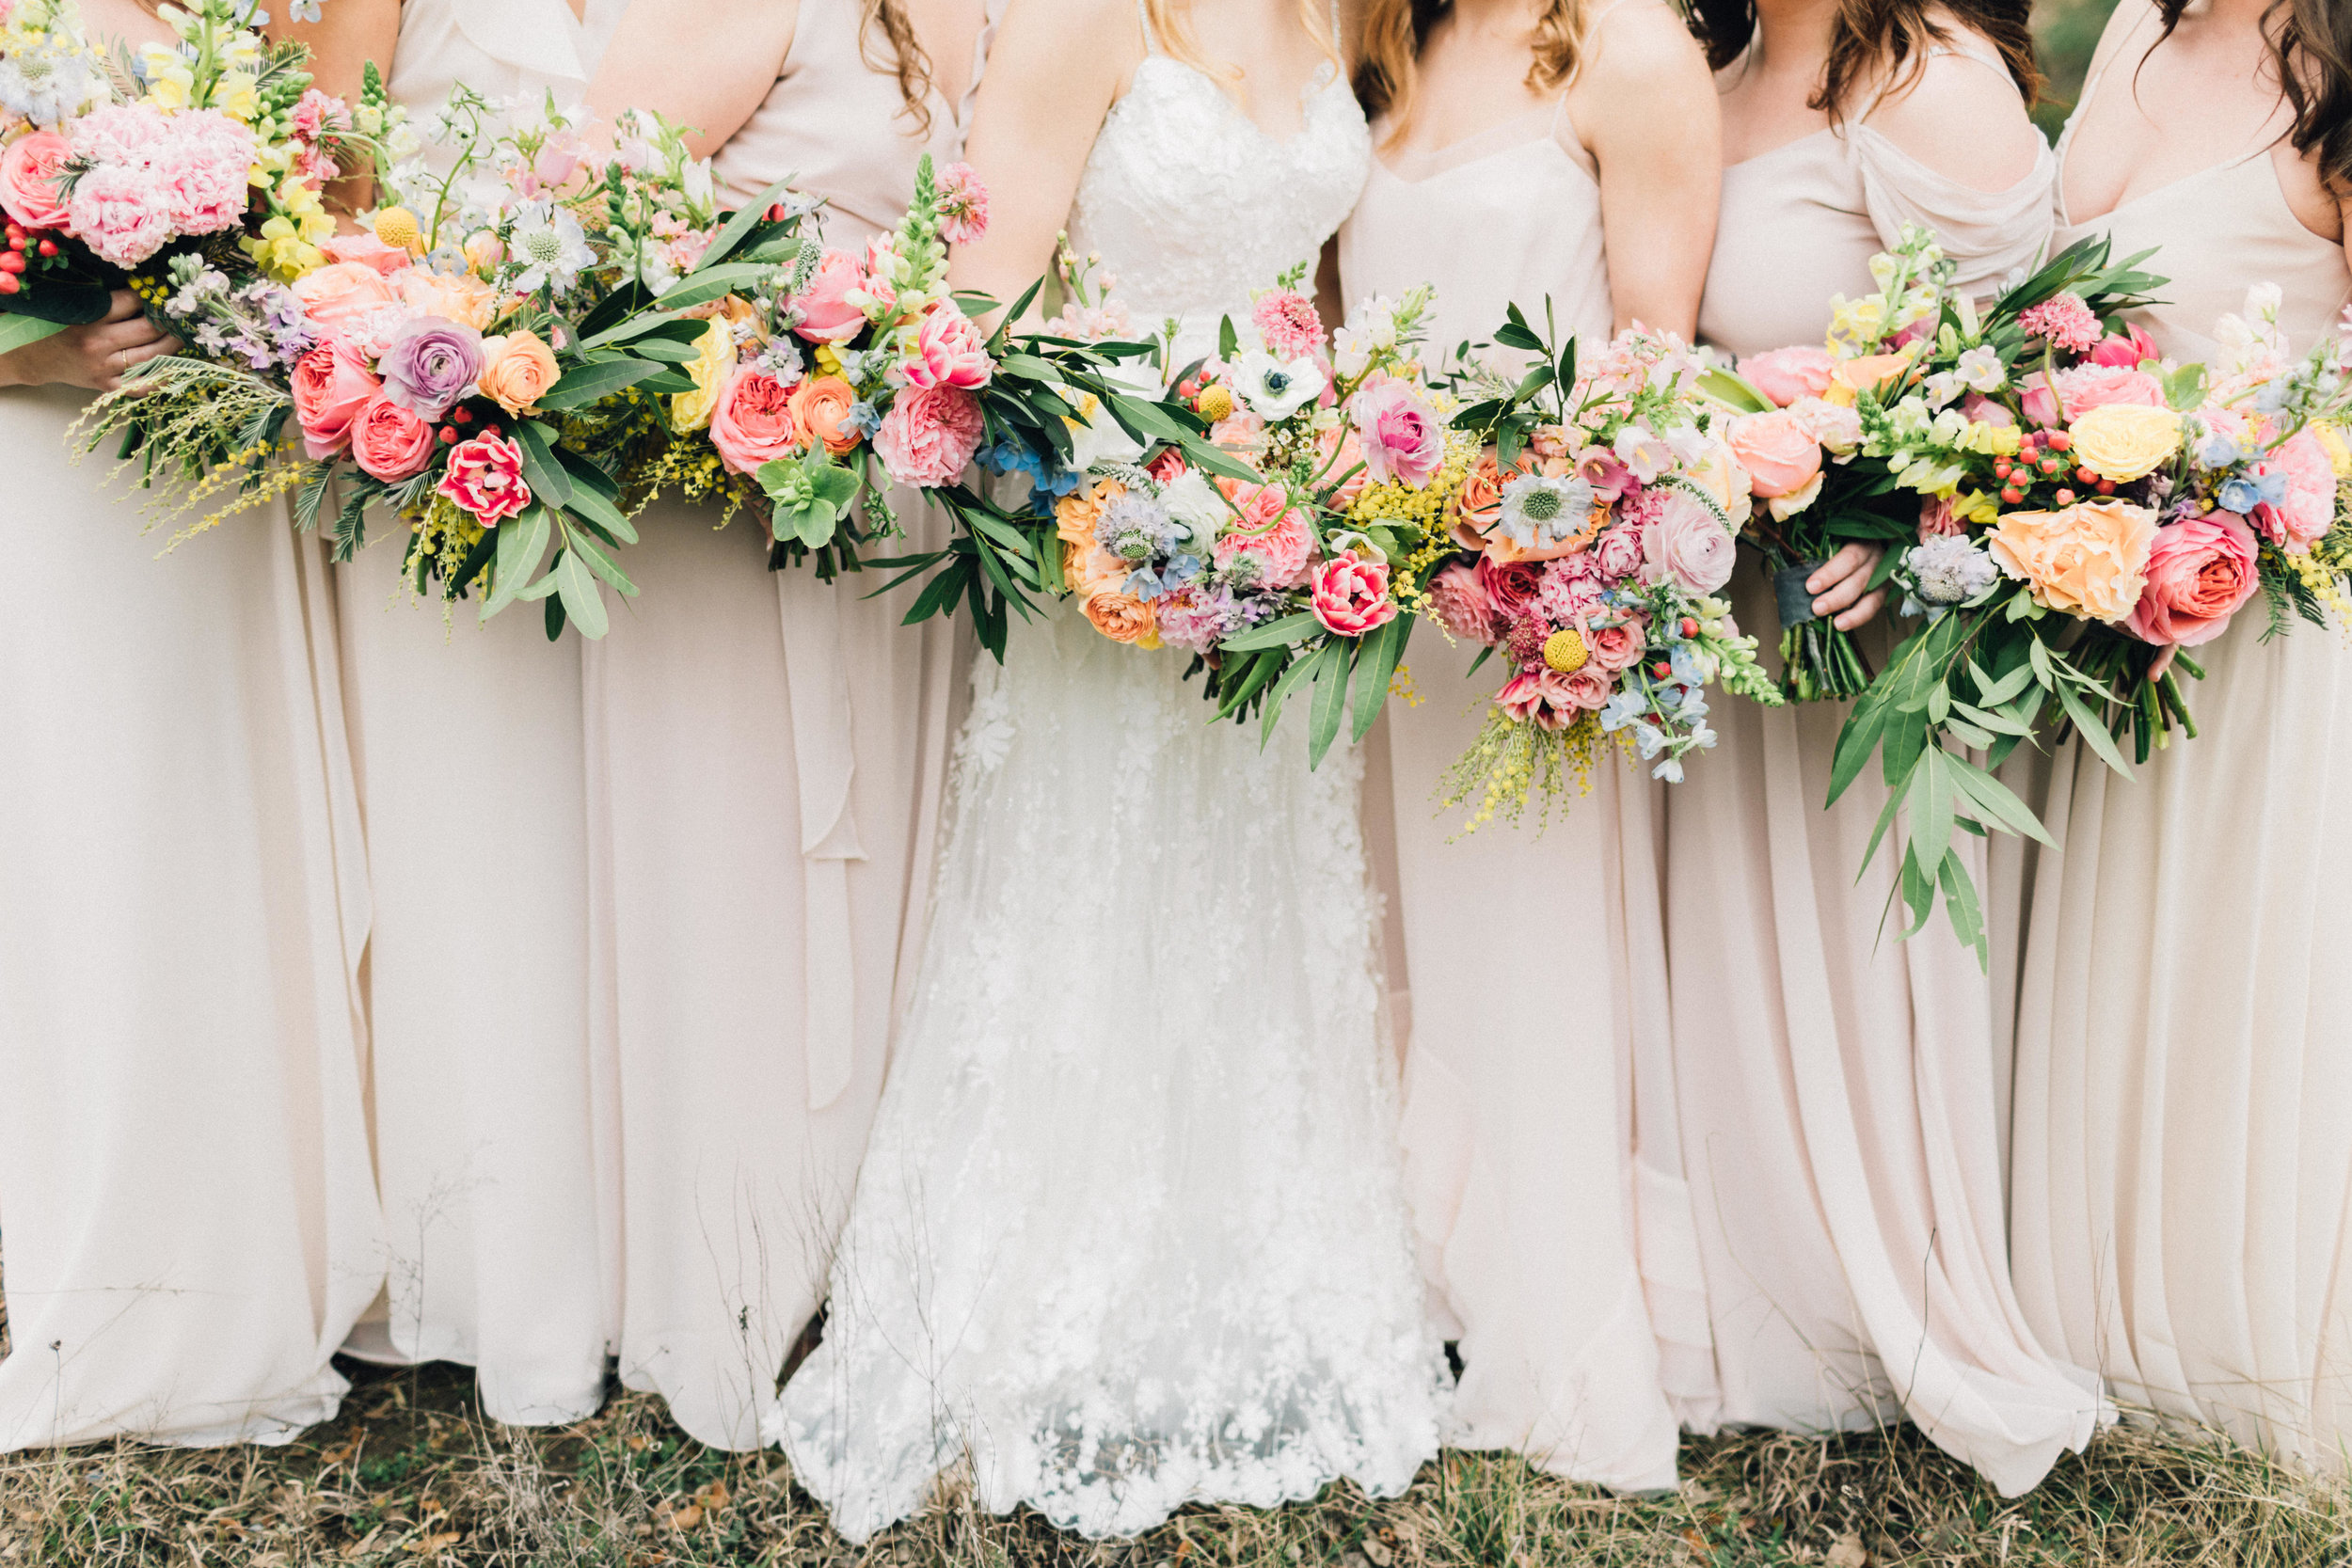 Bohemian style, colorful bridal and bridesmaid bouquets with pink, yellow, coral peonies, poppies, anemone, spray roses, ranunculus at Addison Grove. Petal Pushers floral event design studio located in Dripping Springs, Texas.